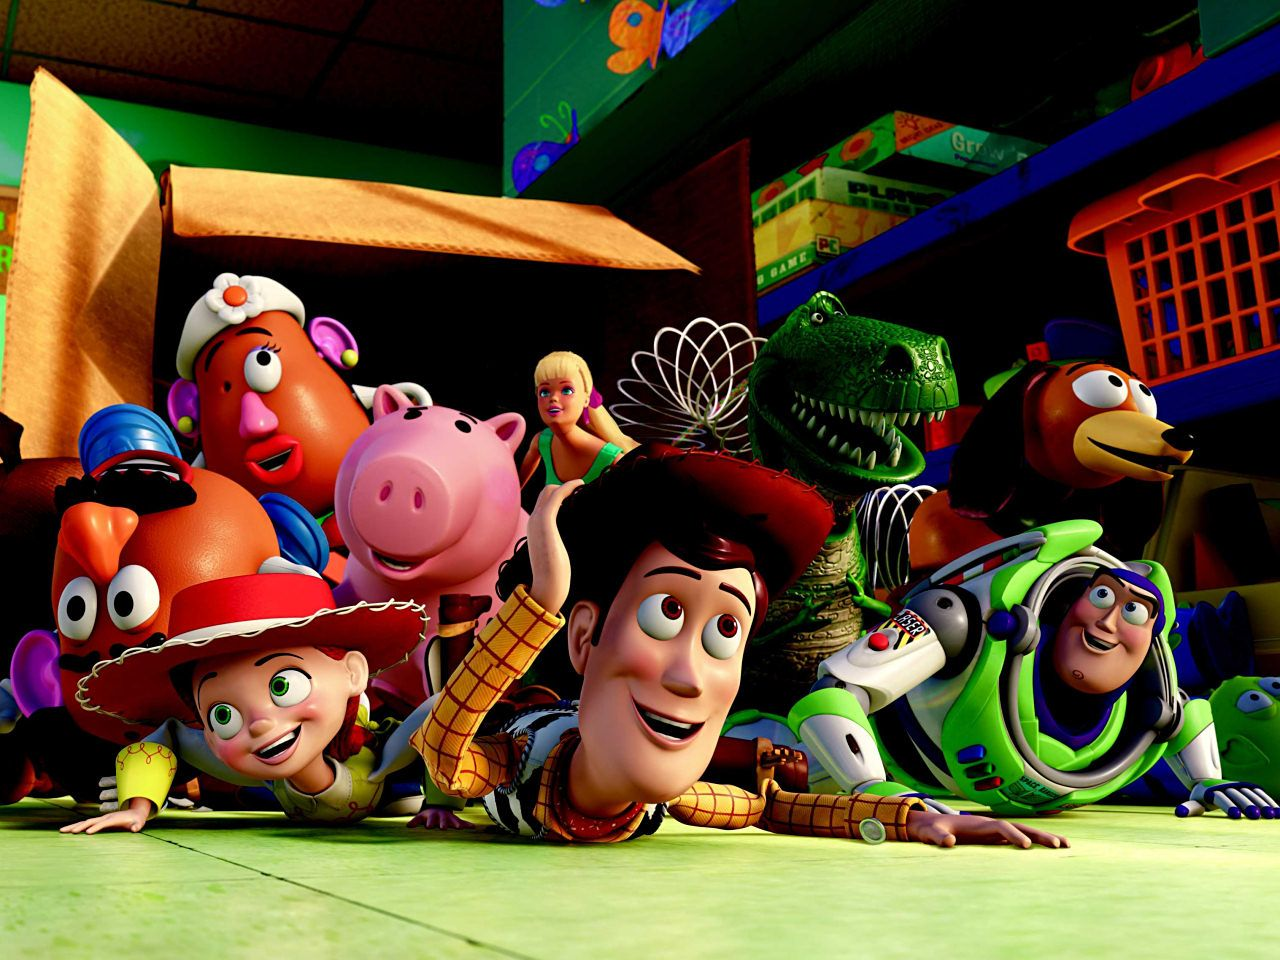 Toy Story Characters Out Of The Box Wallpaper 1280x960